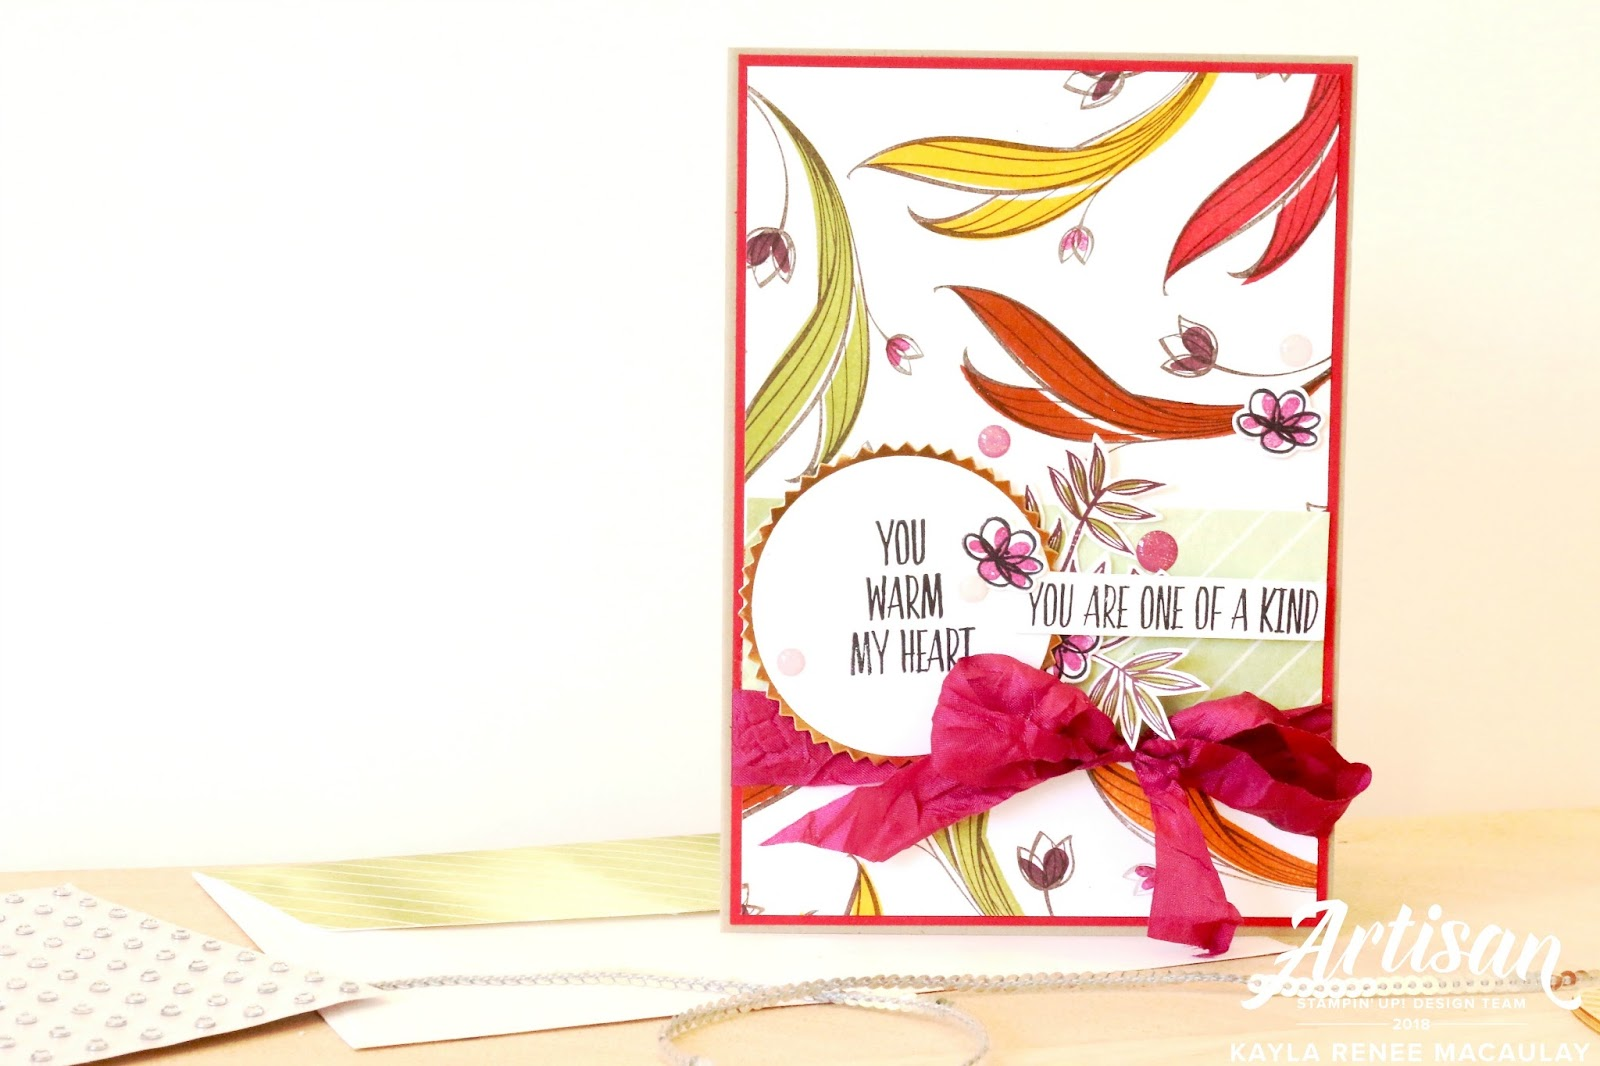 Hereu0027s A Look At My Finished Card. I Have Been Really Loving Using The  Ribbons At The Moment And Really Love This Berry Burst Crinkled Seam  Binding, ...